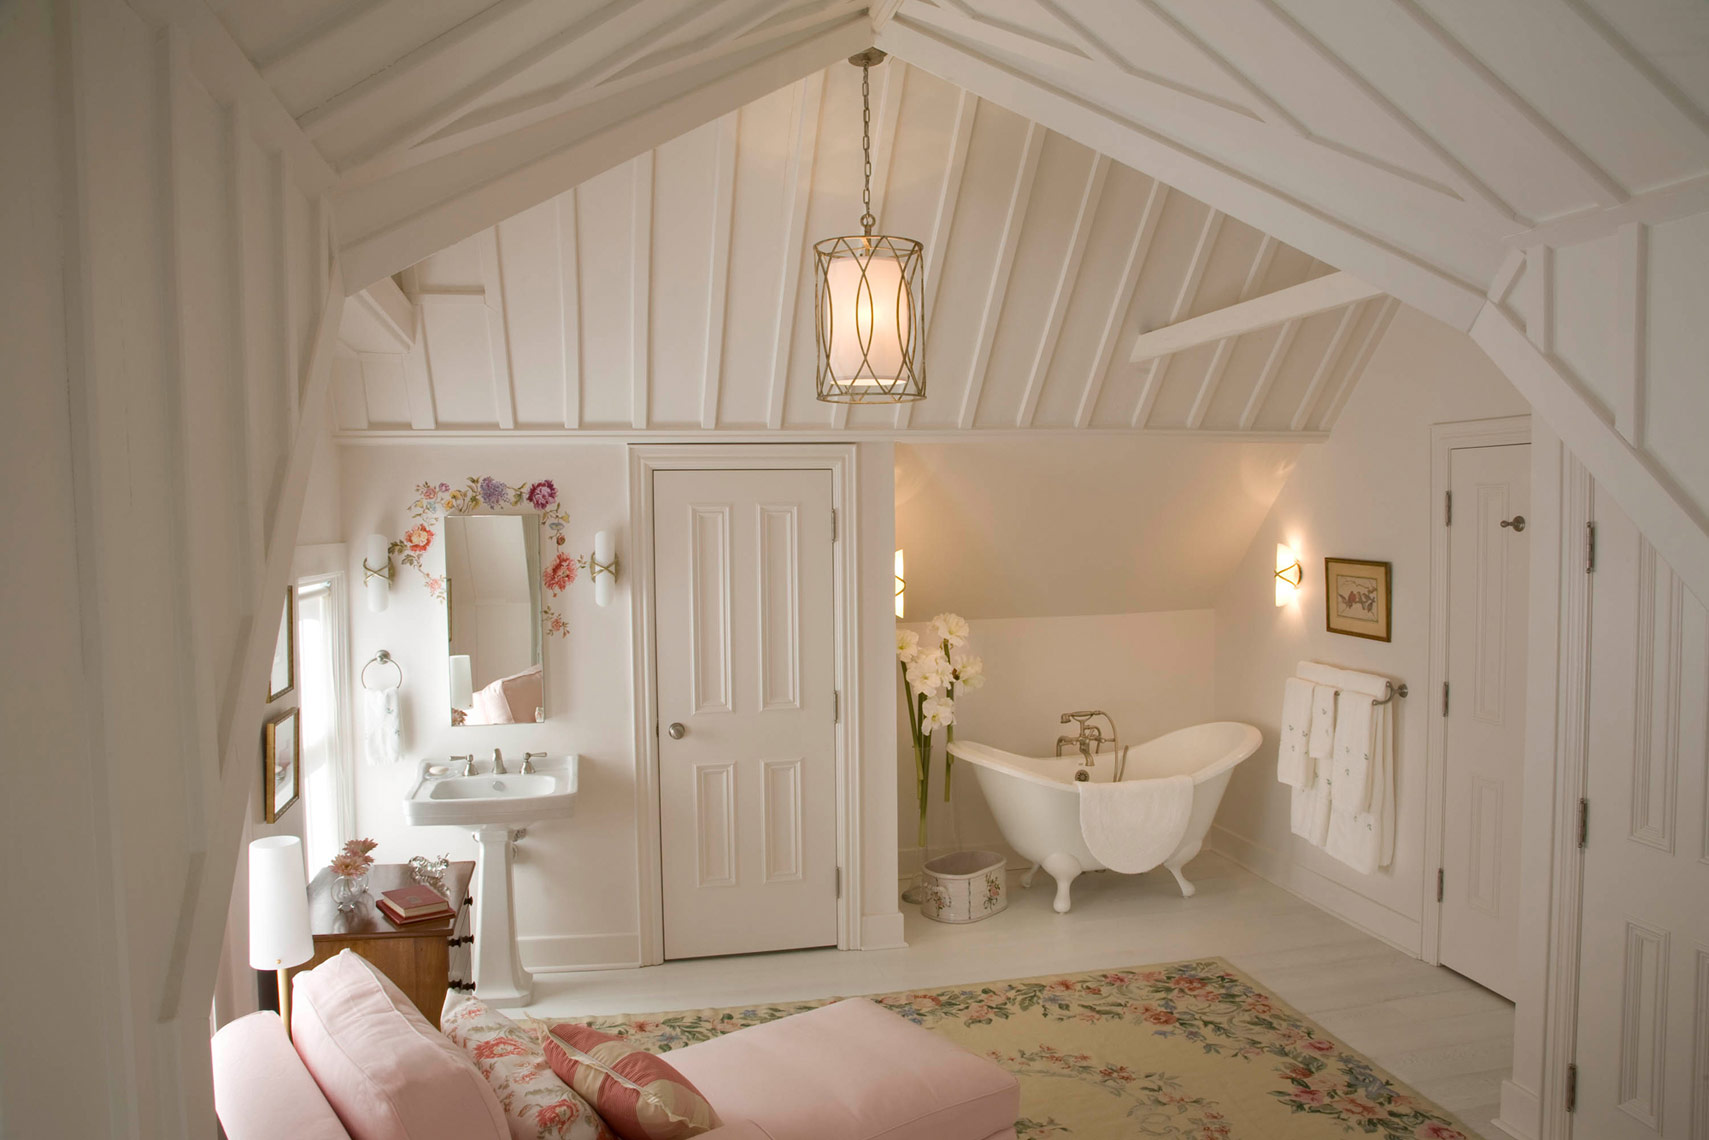 Residential-Interior-StratfordCottage-bed-room-tub